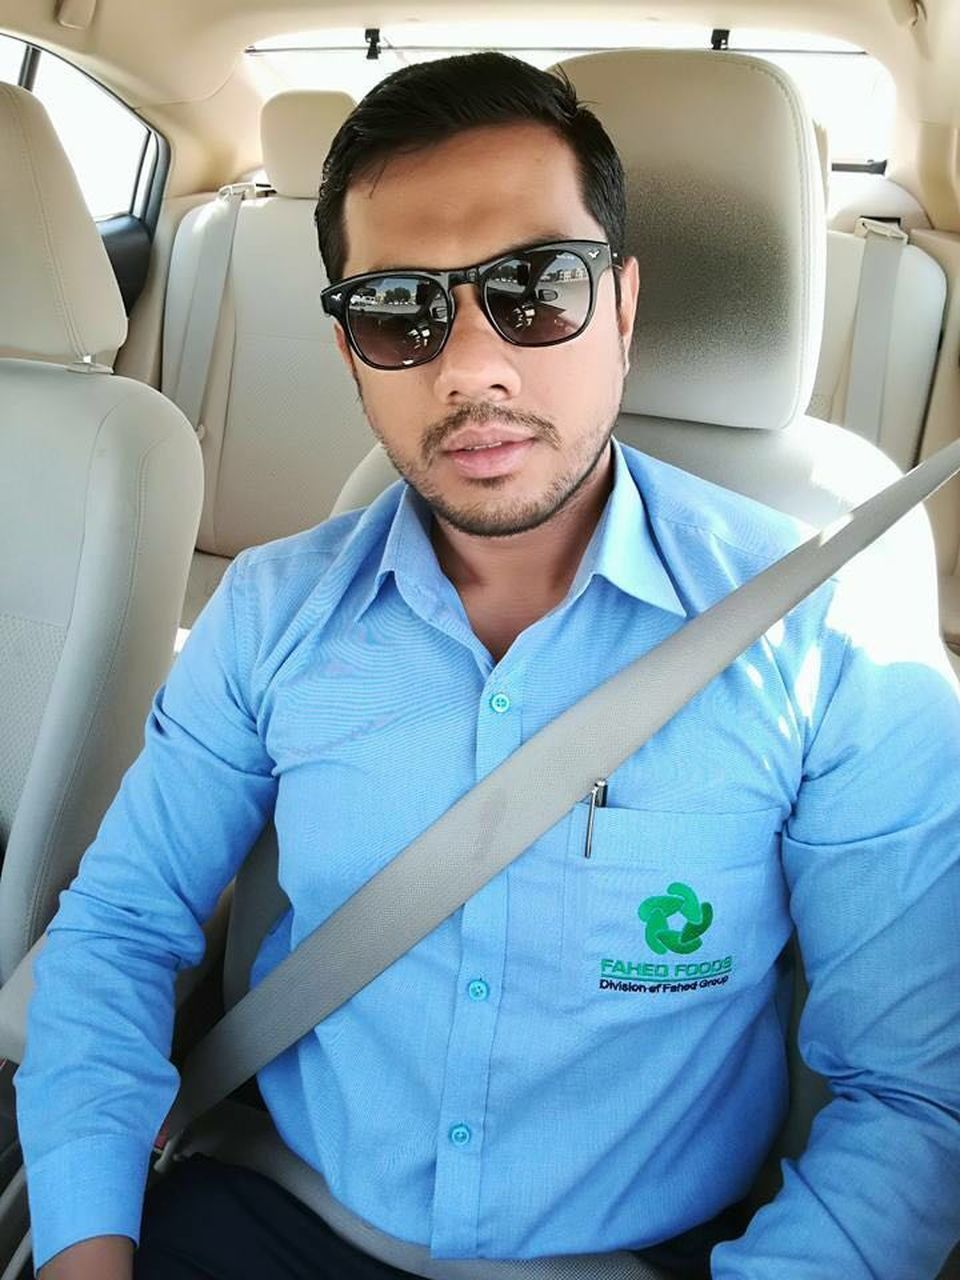 sunglasses, car, vehicle interior, land vehicle, young adult, transportation, young men, one person, mode of transport, car interior, front view, sitting, real people, lifestyles, casual clothing, looking at camera, leisure activity, day, eyeglasses, vehicle seat, portrait, outdoors